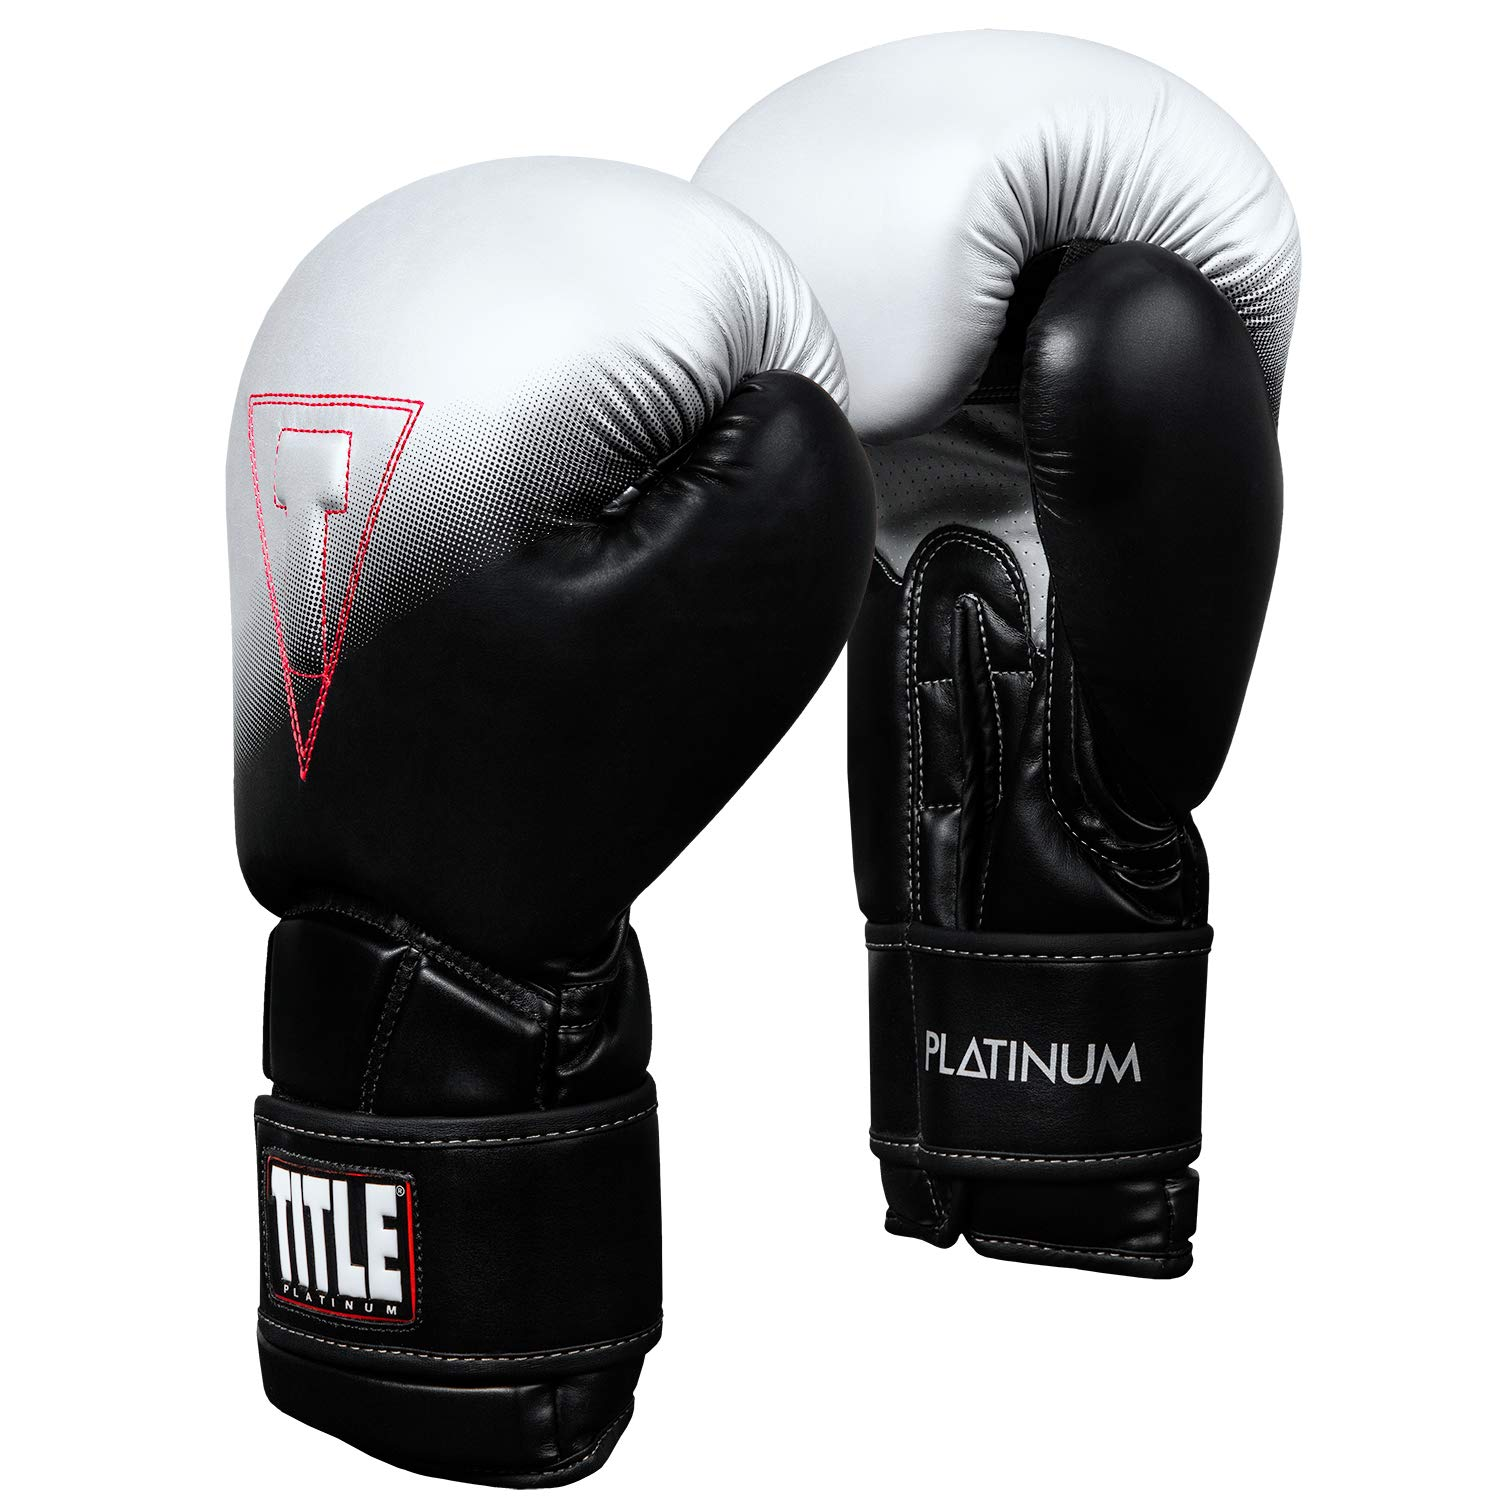 Top 16 Best Boxing Gloves (2019 Reviews & Buying Guide) 2